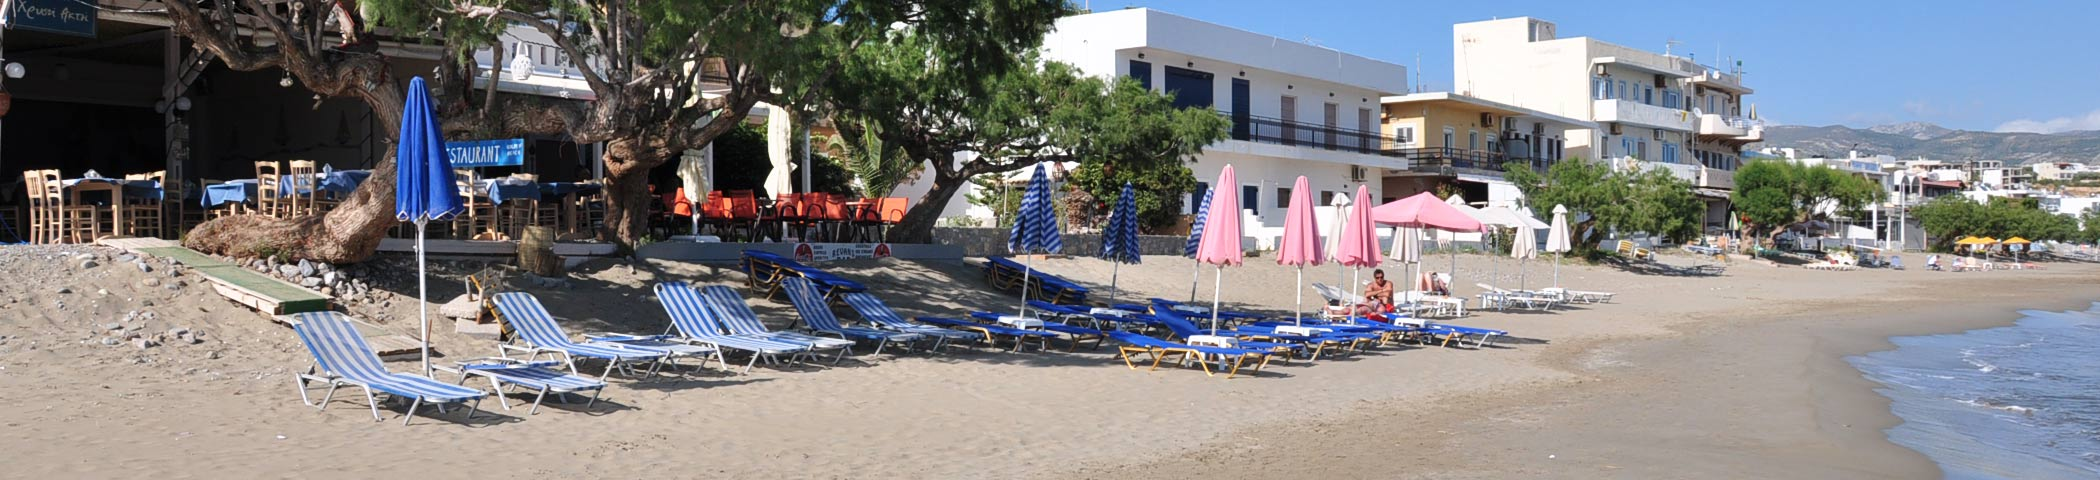 East Crete apartments and beach cafe in Makrigialos